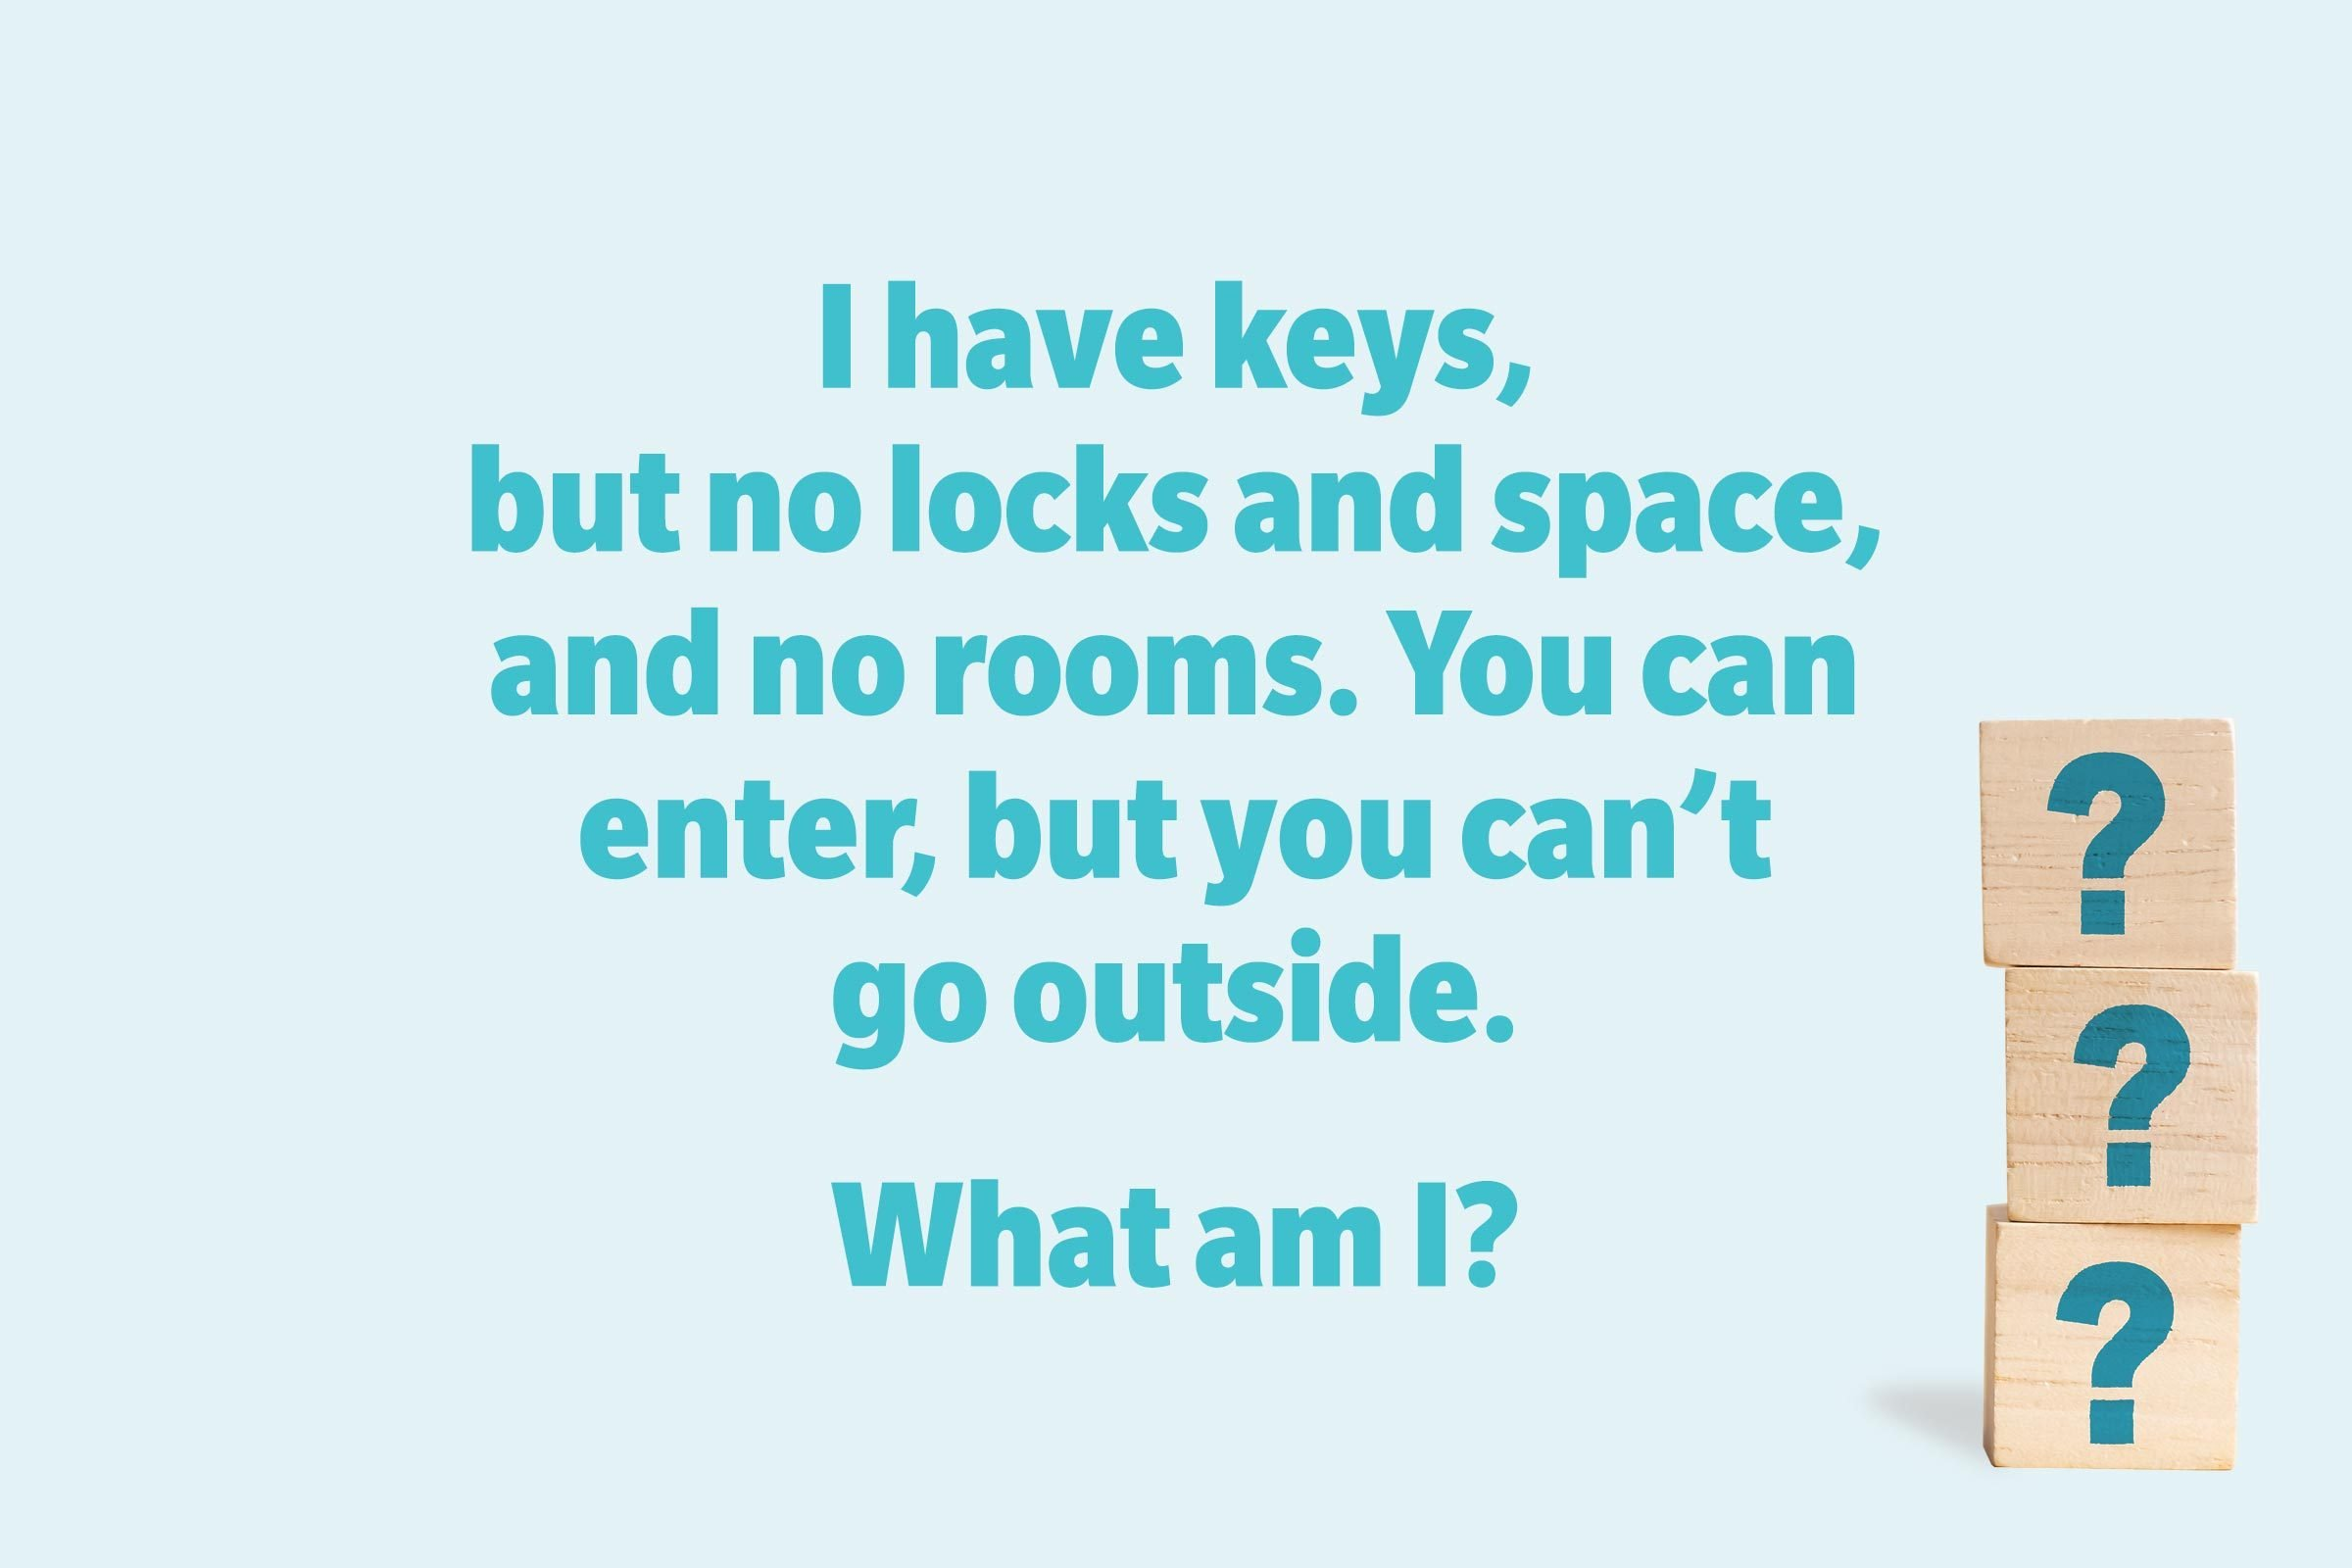 I have keys, but no locks and space, and no rooms. You can enter, but you can't go outside. What am I?